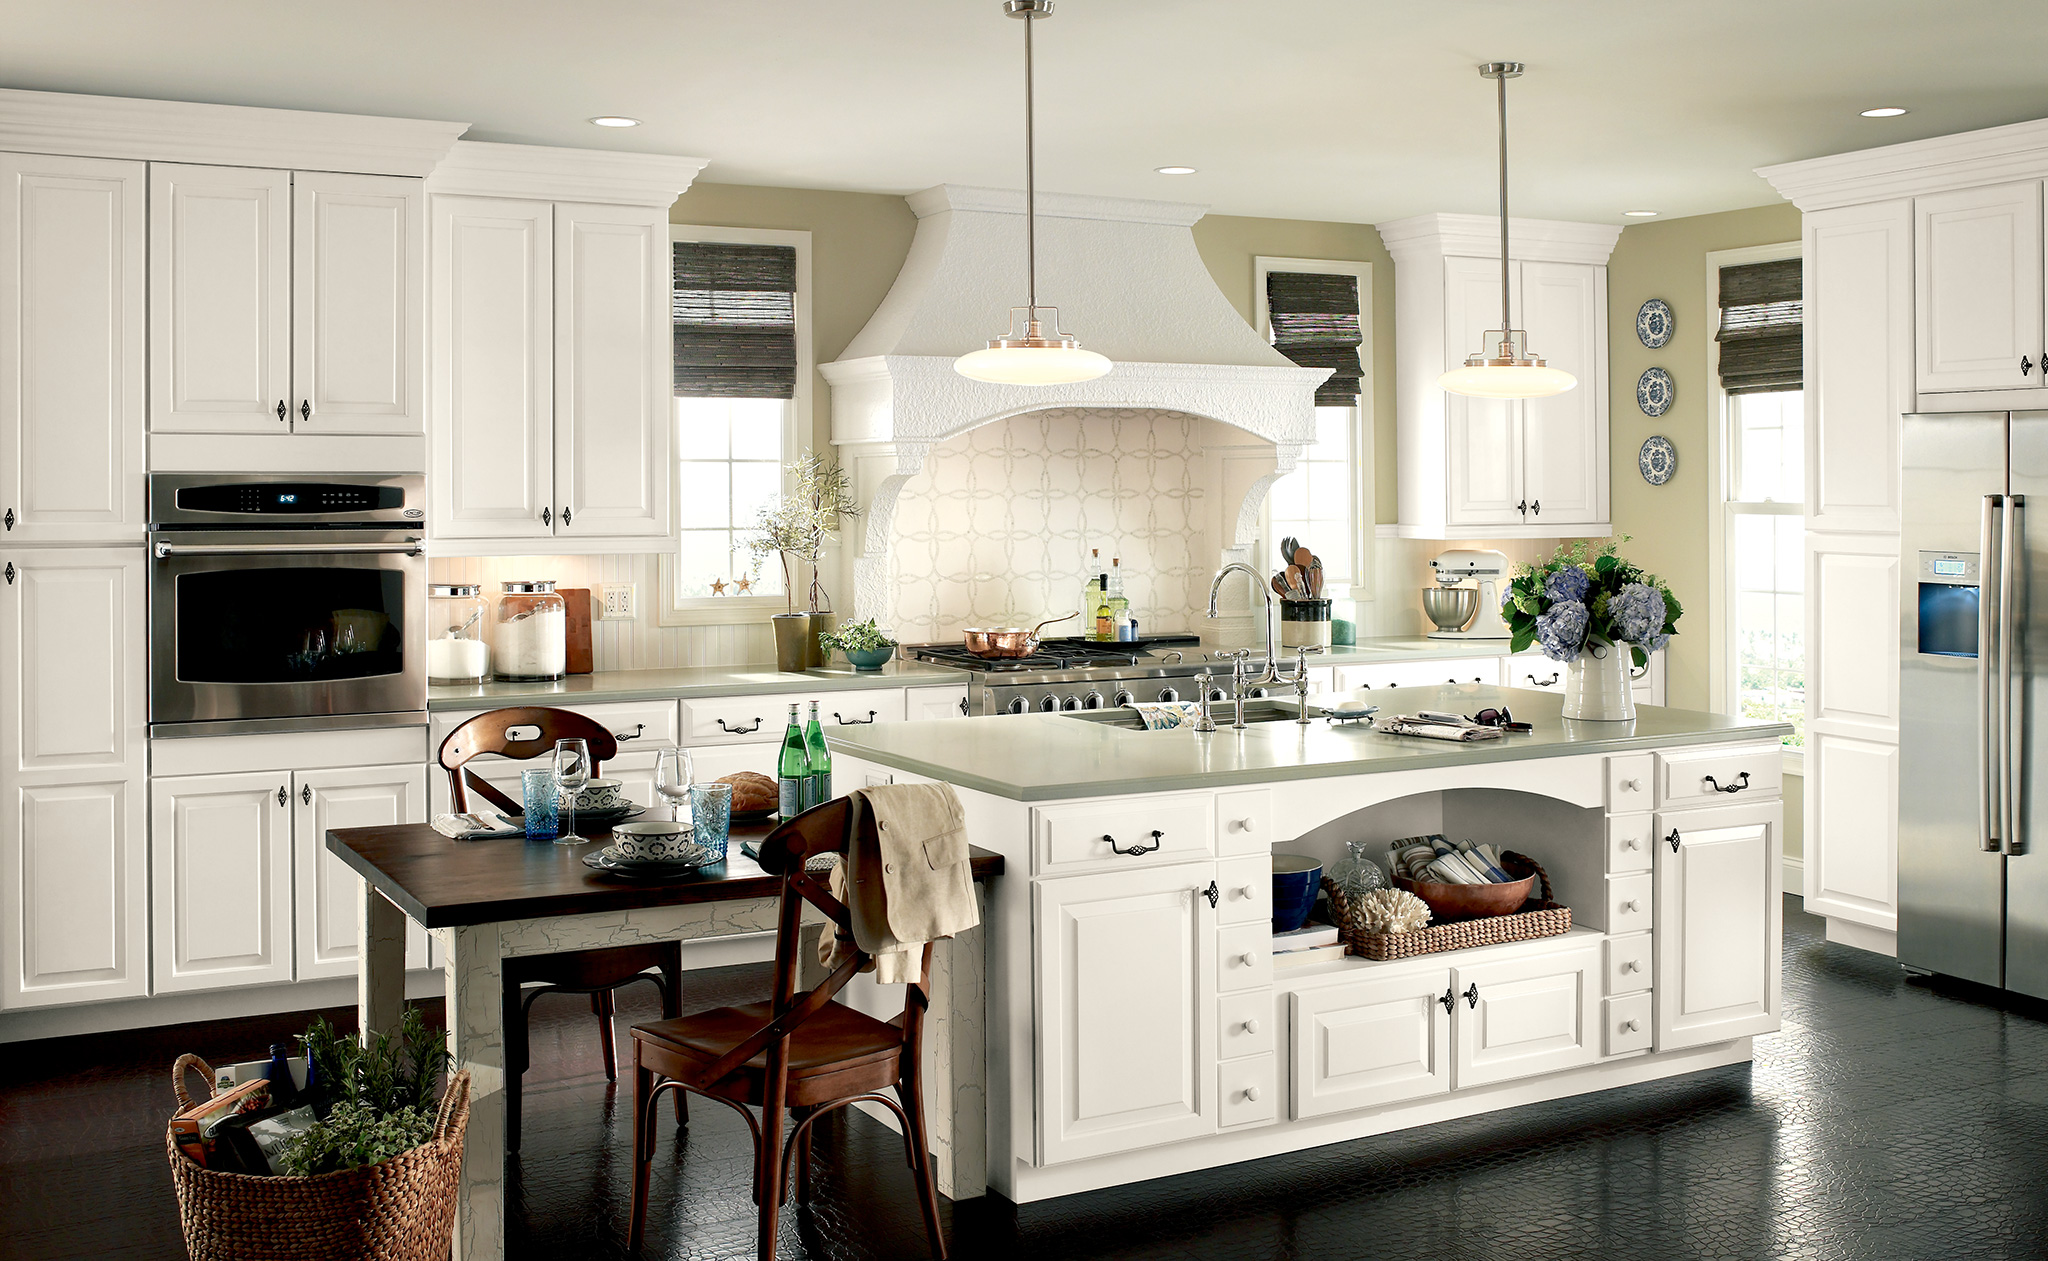 american kitchen cabinets cabinet hutch ekb kitchens and interior design remodels